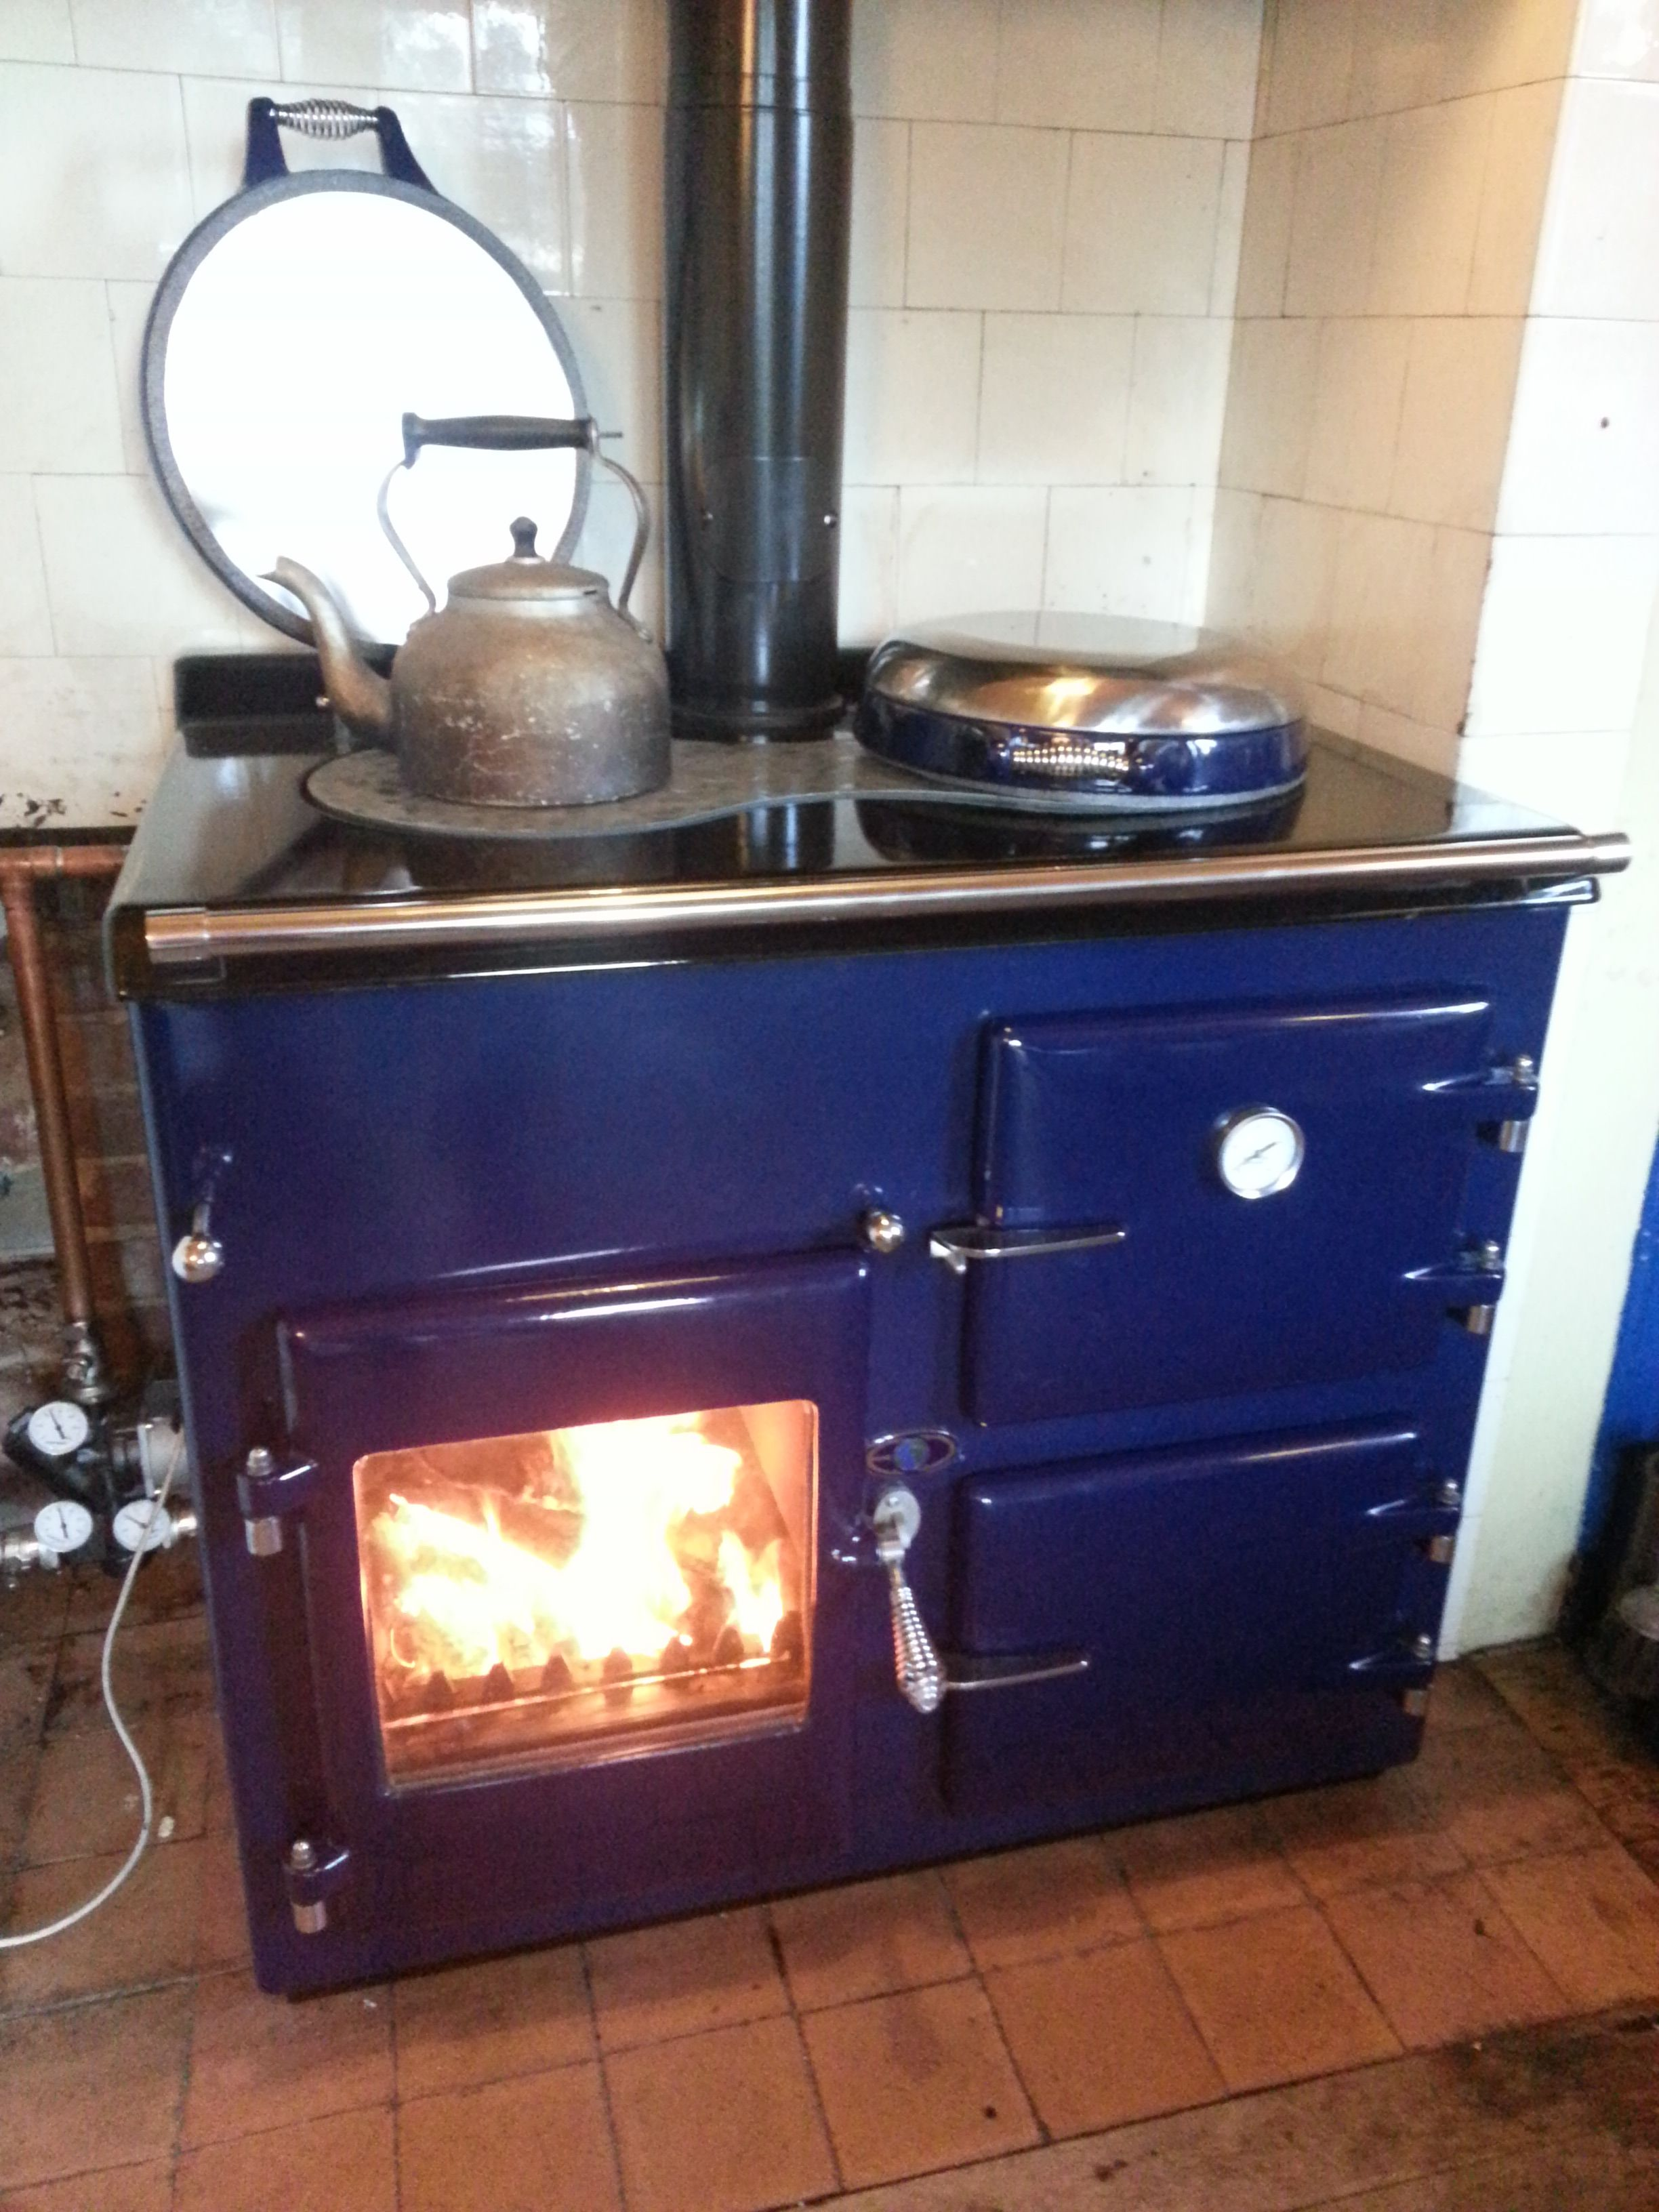 Cast Iron Kitchen Stove How To Clean Tiles Walls Aga Rayburn Wood Burning Range For The Home Pinterest